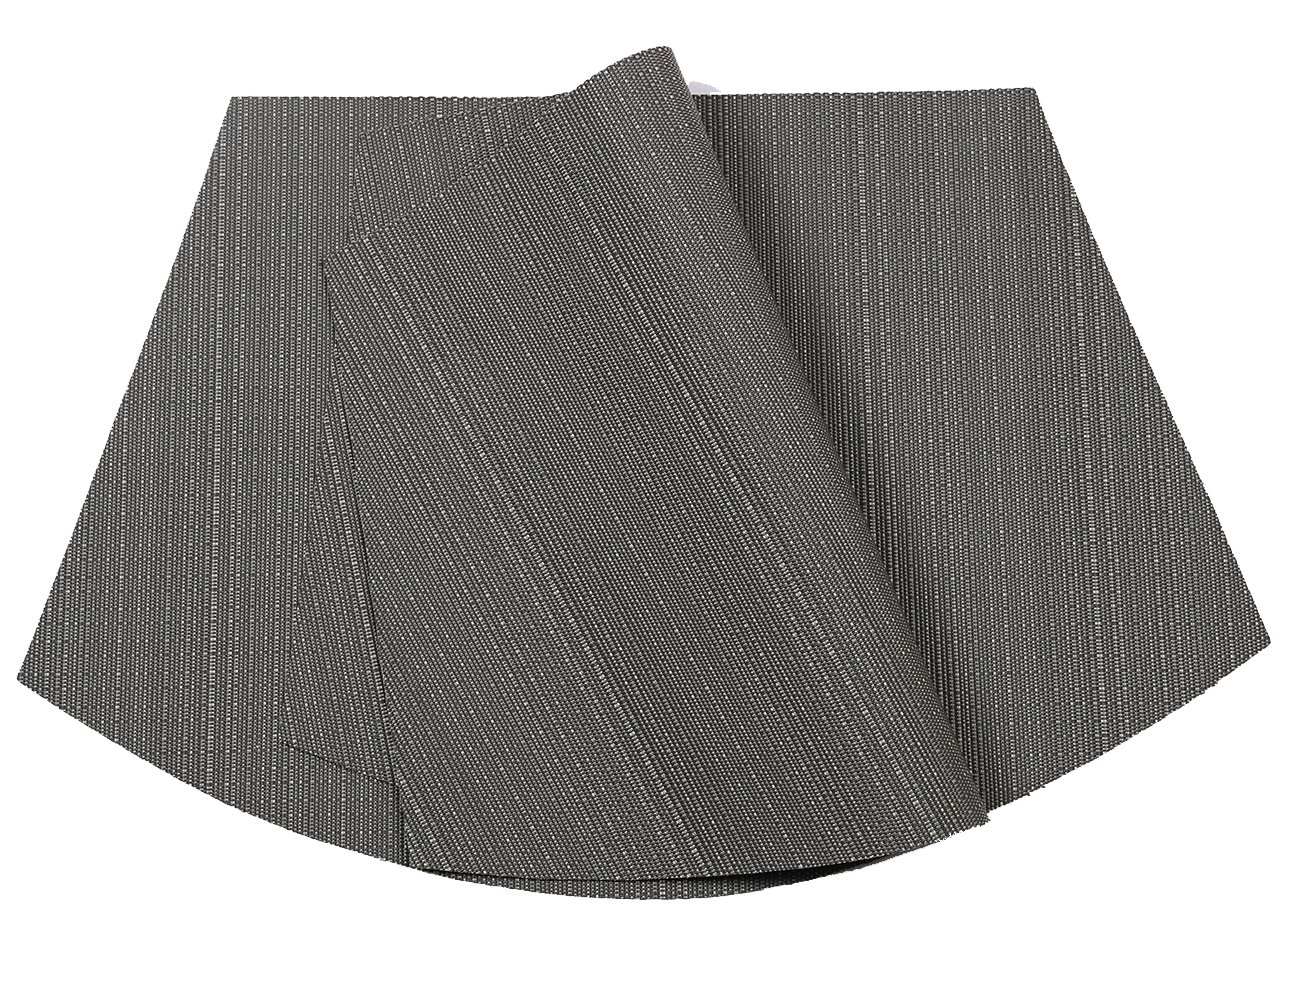 PAUWER Wedge Placemats for Round Tables Heat Insulation Stain-resistant Washable Vinyl Round Table Placemats Set of 6 (Grey) by PAUWER (Image #2)